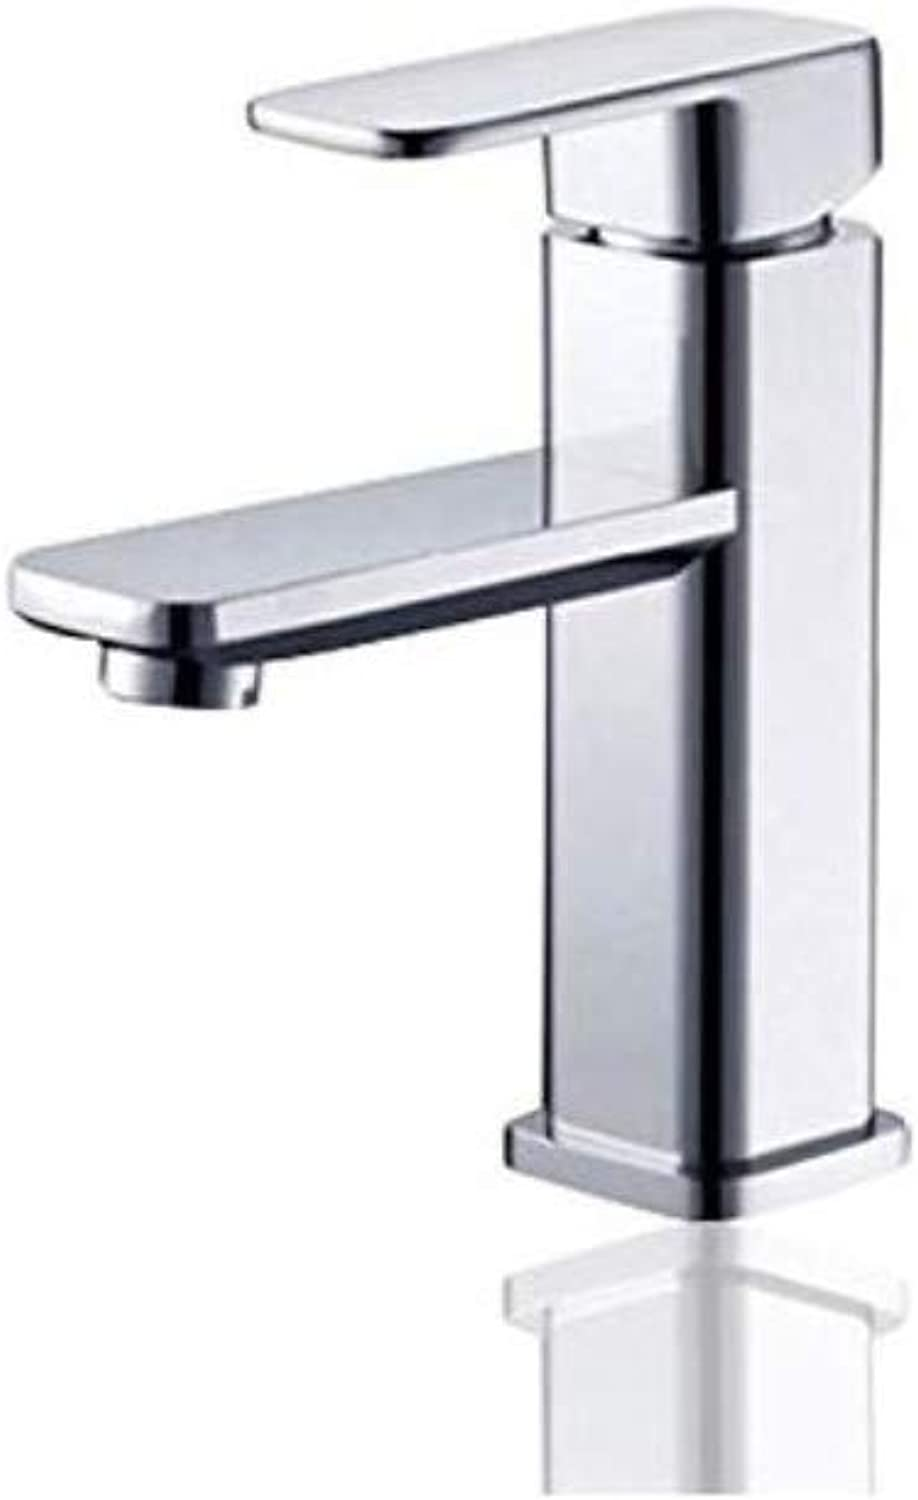 Modern Plated Kitchen Bathroom Faucet Copper Hot and Cold Basin Faucet Hotel Bathroom Cabinet Bathroom Wash Basin Sink Basin Faucet